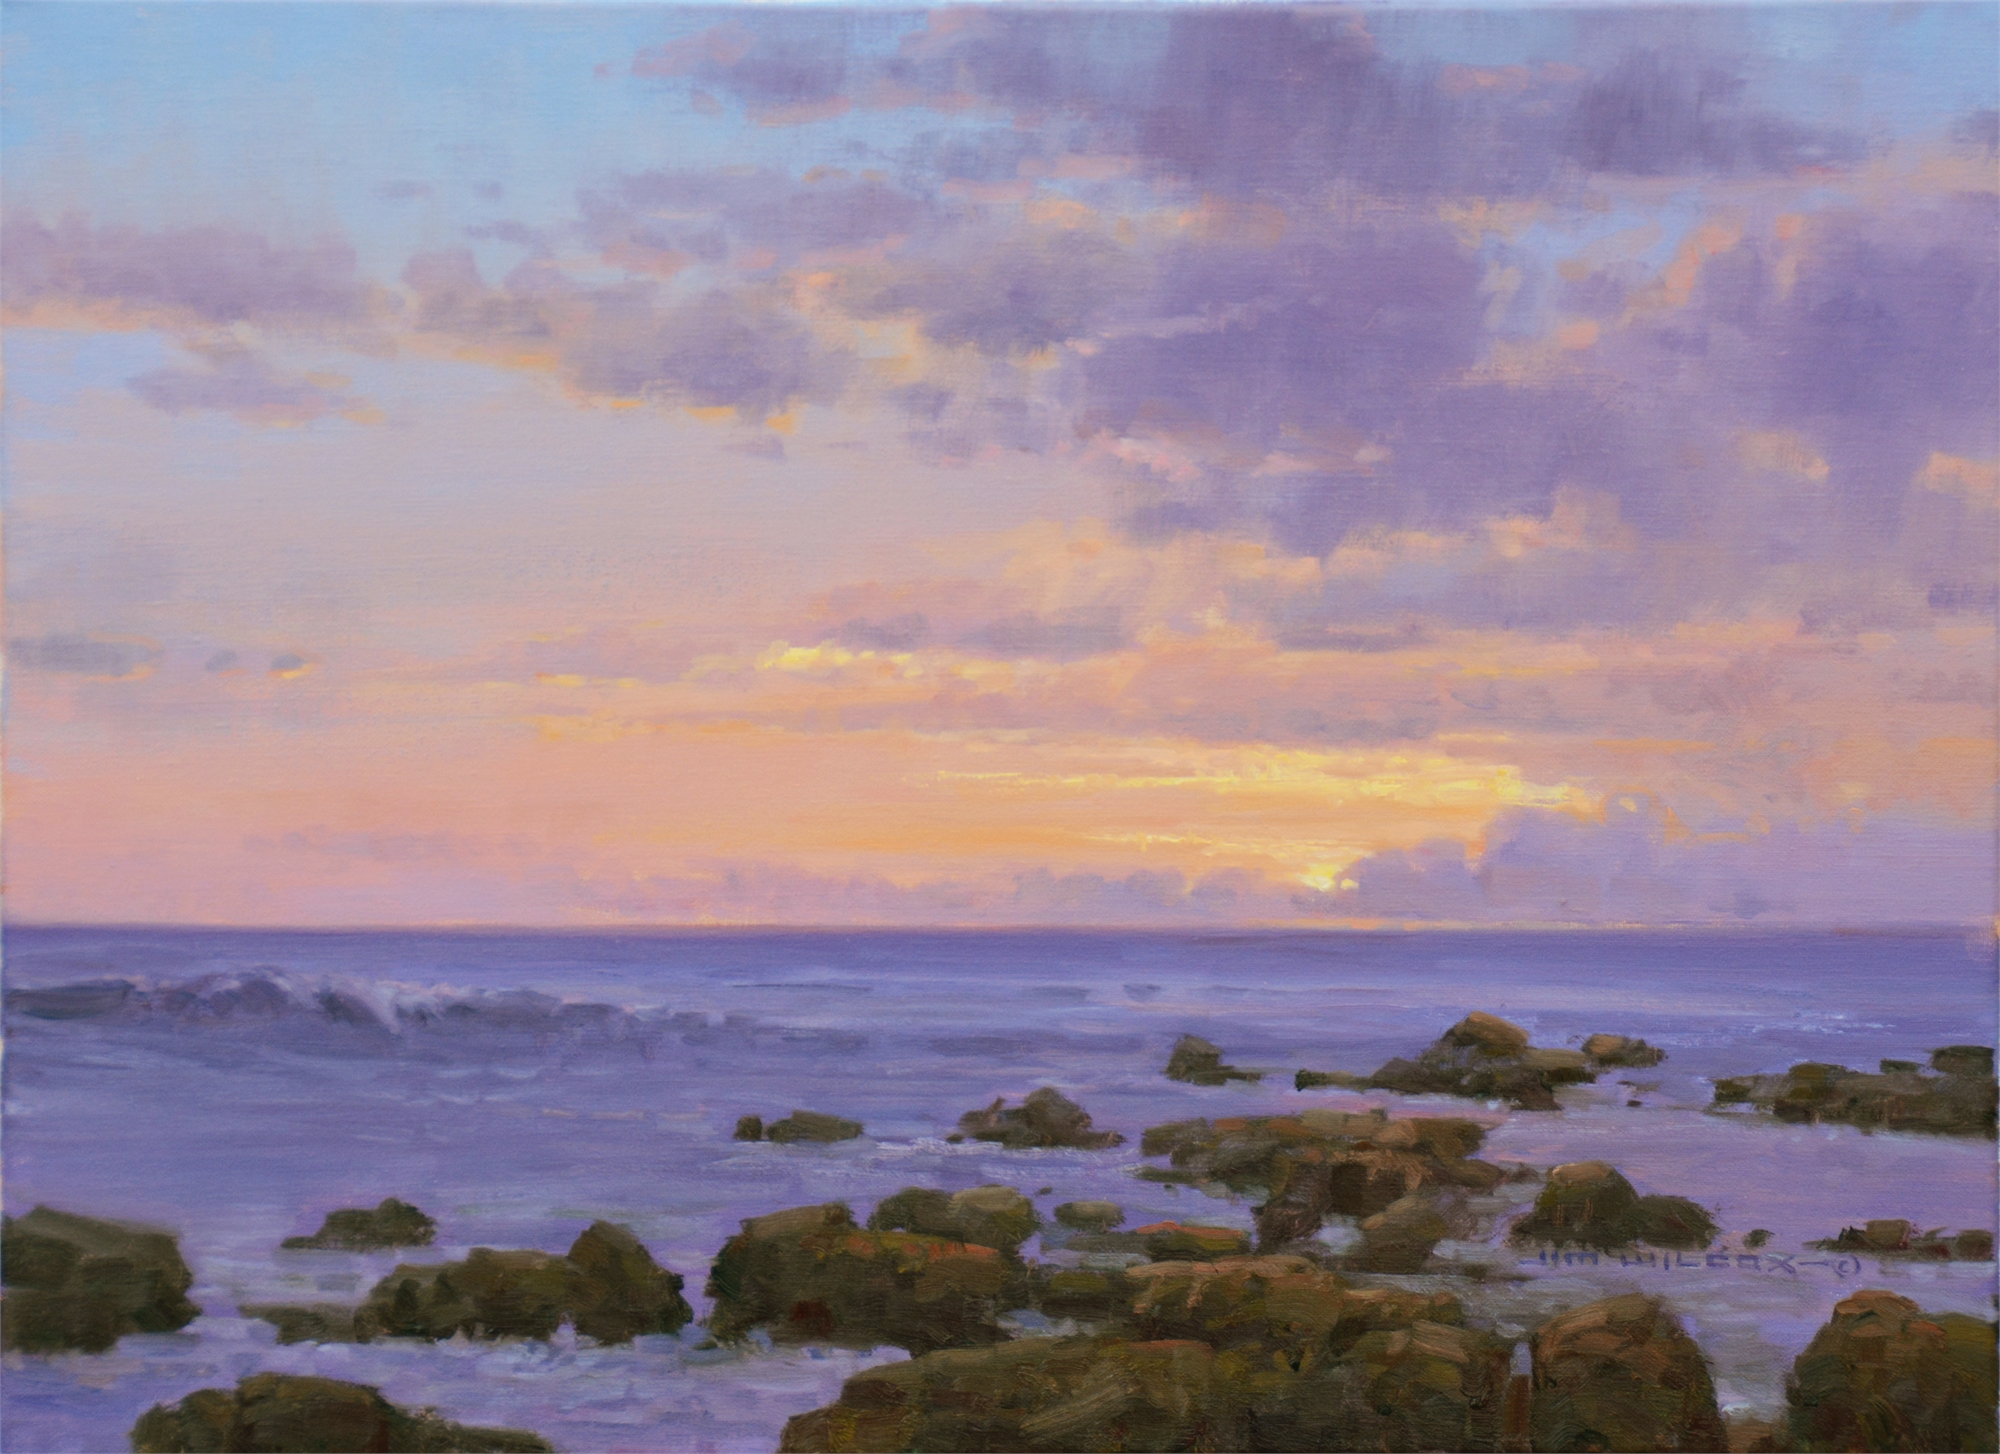 Pacific Perfection by Jim Wilcox